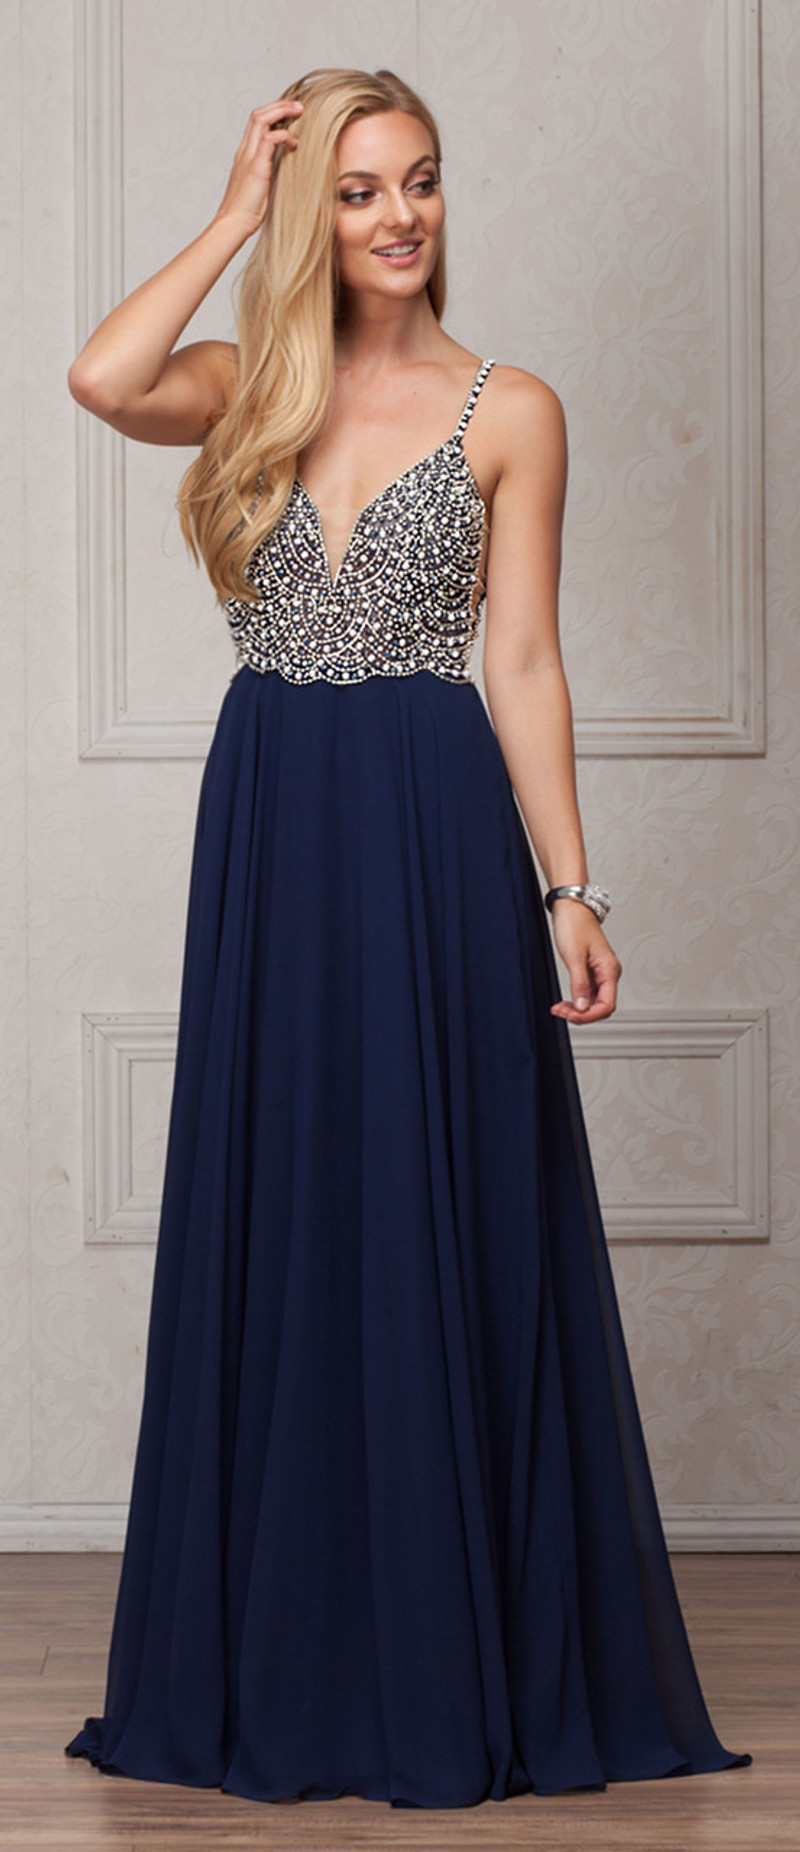 This dress is available in navy.